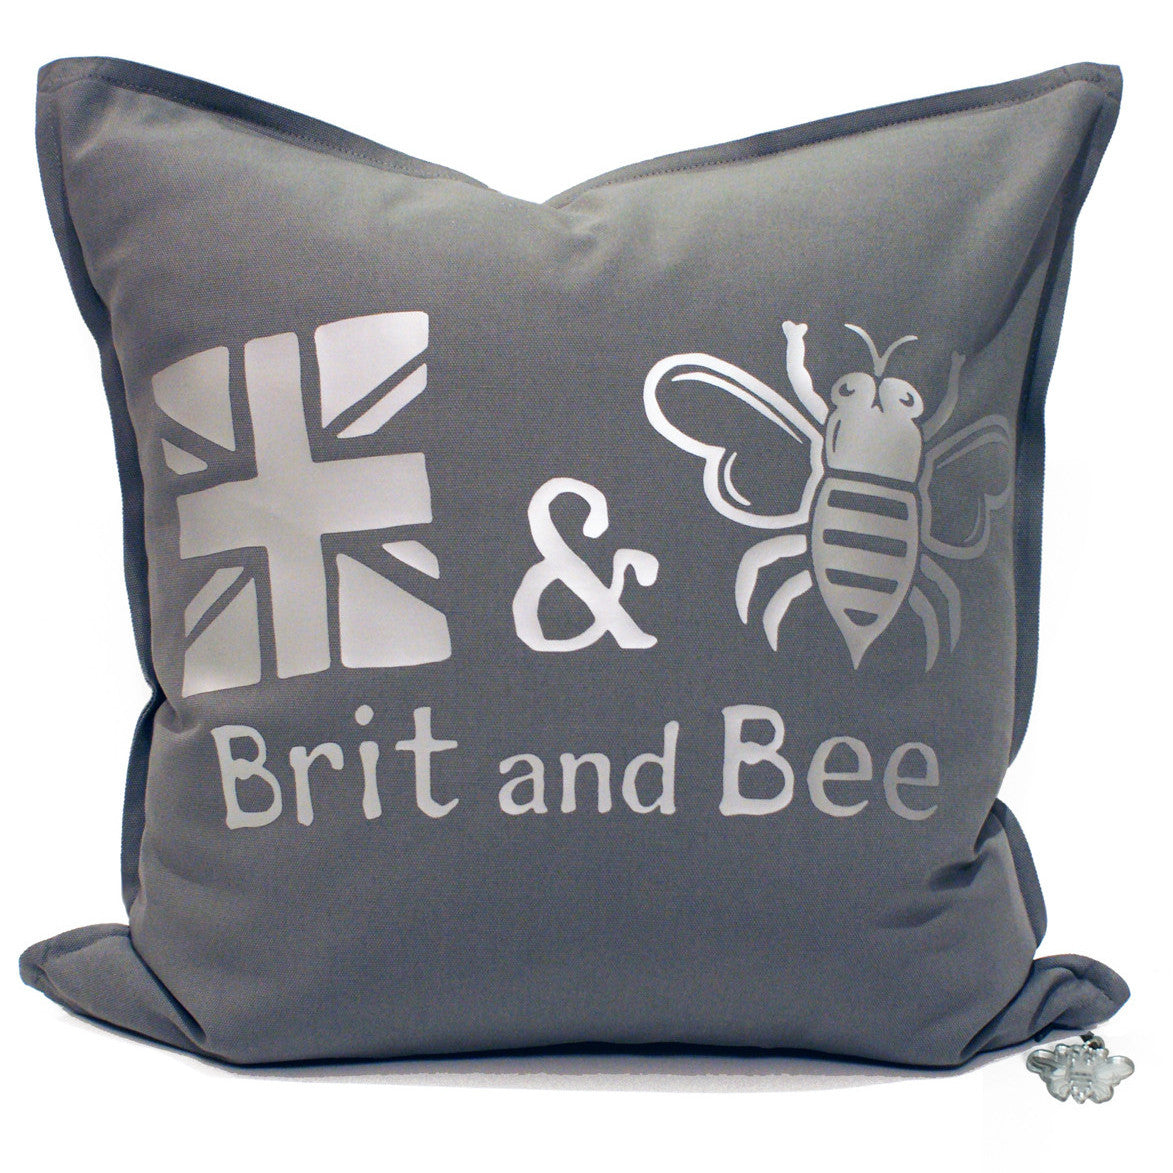 Brit and Bee Est. Throw Pillow Silver - FRONT